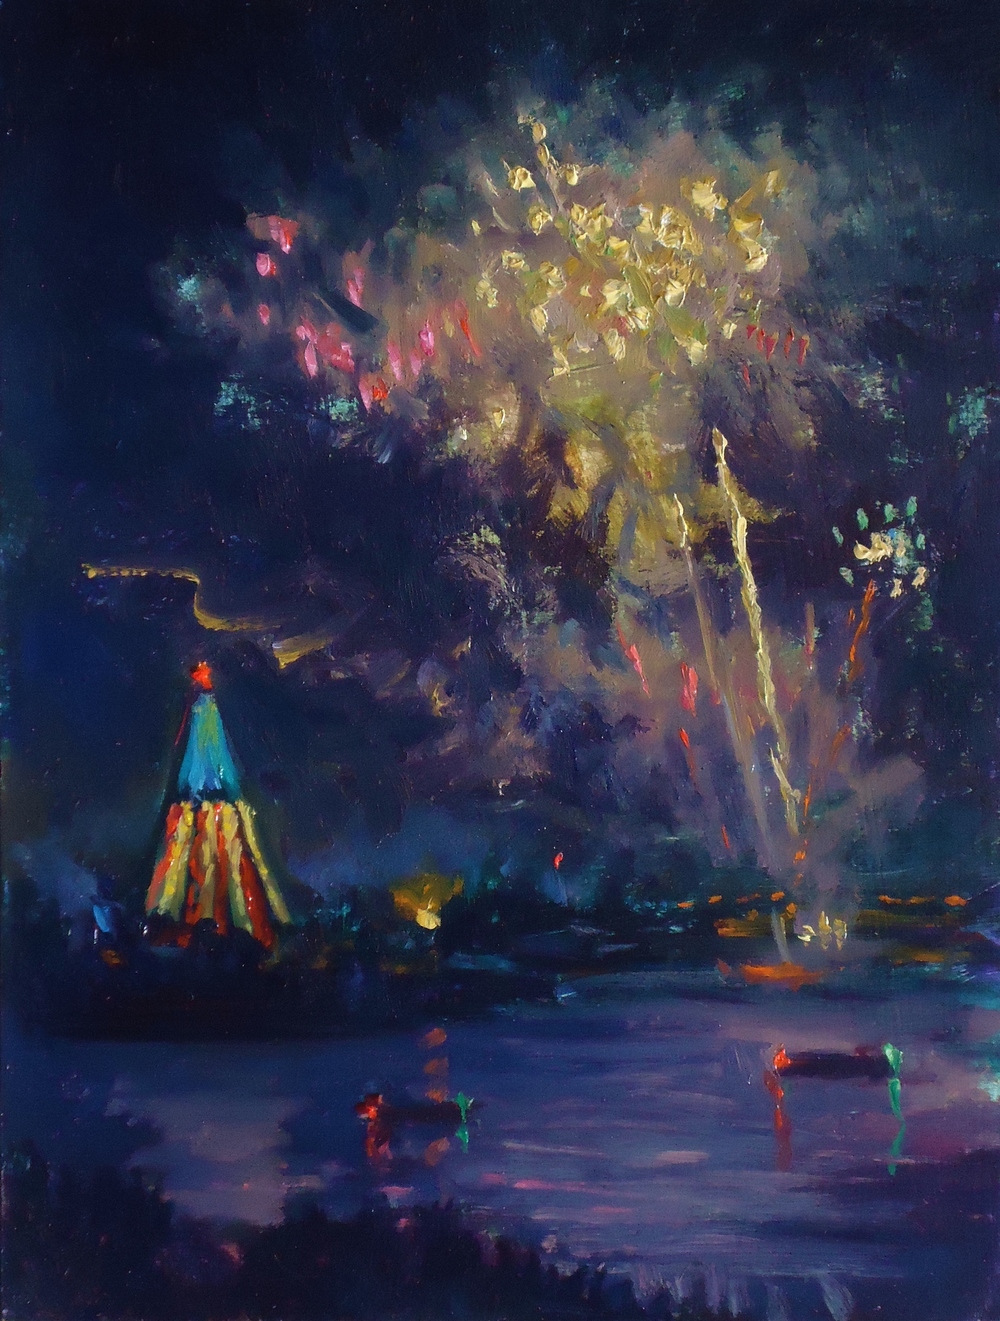 4th of july festivities, sea world 12x9 oil 2012.jpg